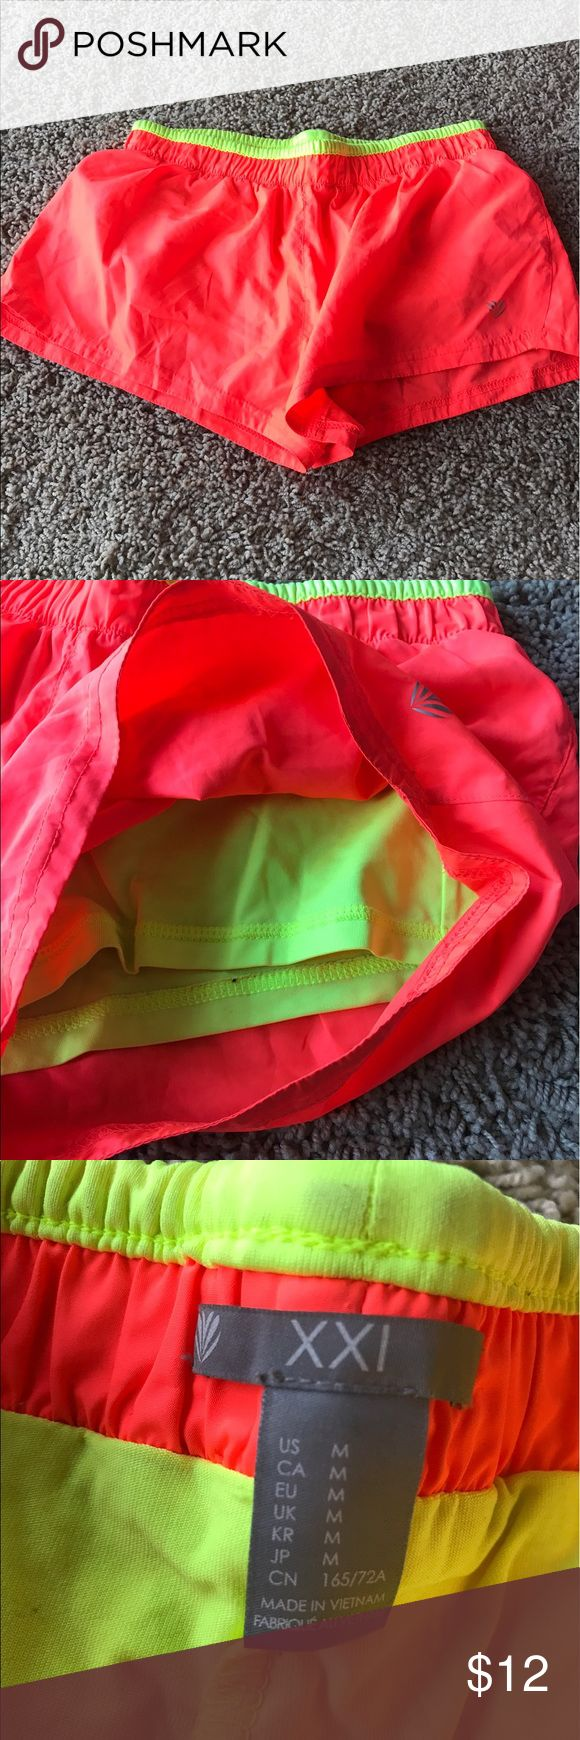 Neon forever 21 workout shorts! Neon forever 21 workout shorts. Worn only twice!! Bright pink/orange color and neon green shorts underneath. Size medium Forever 21 Shorts